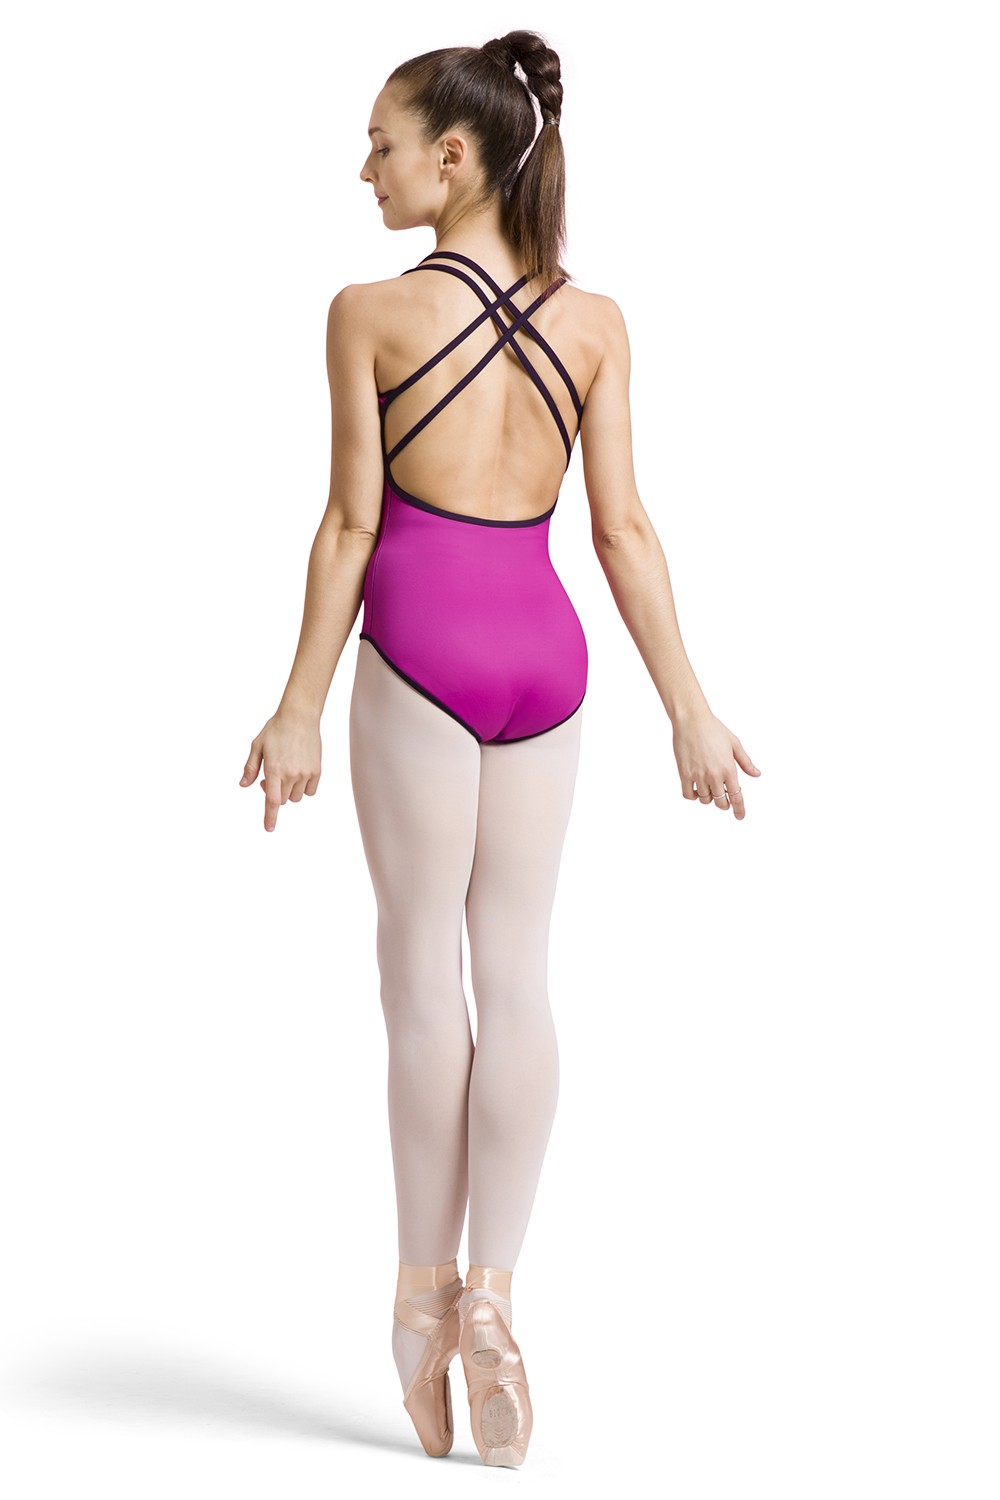 Cadence   Women's Dance Leotards